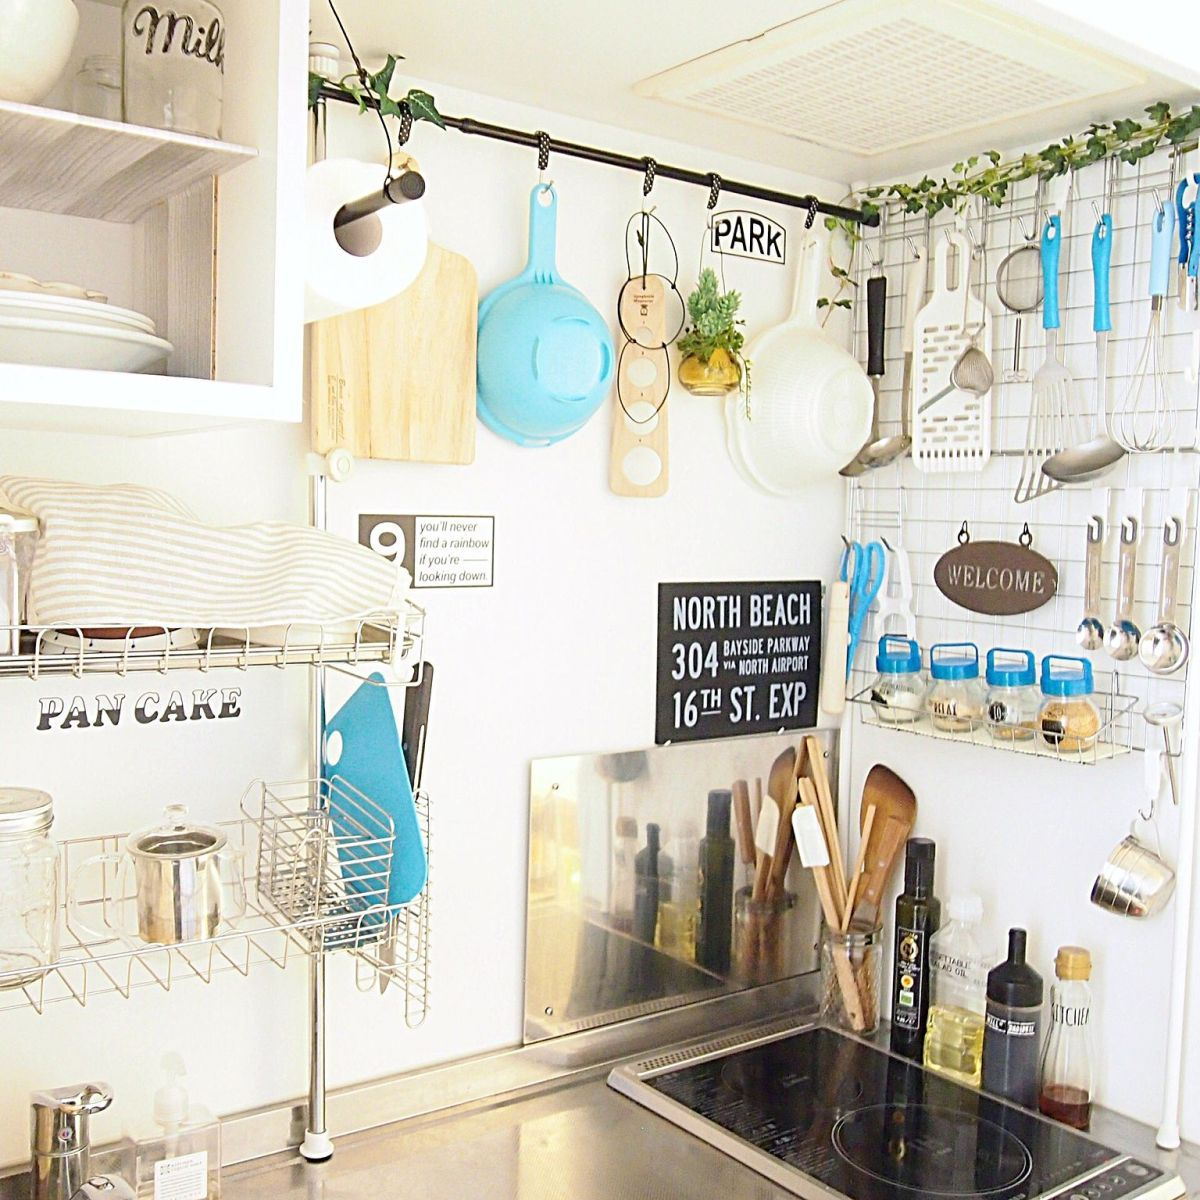 Japan Small Kitchen Design: 21 Genius Japanese Small Space Hacks You Will Want To Copy